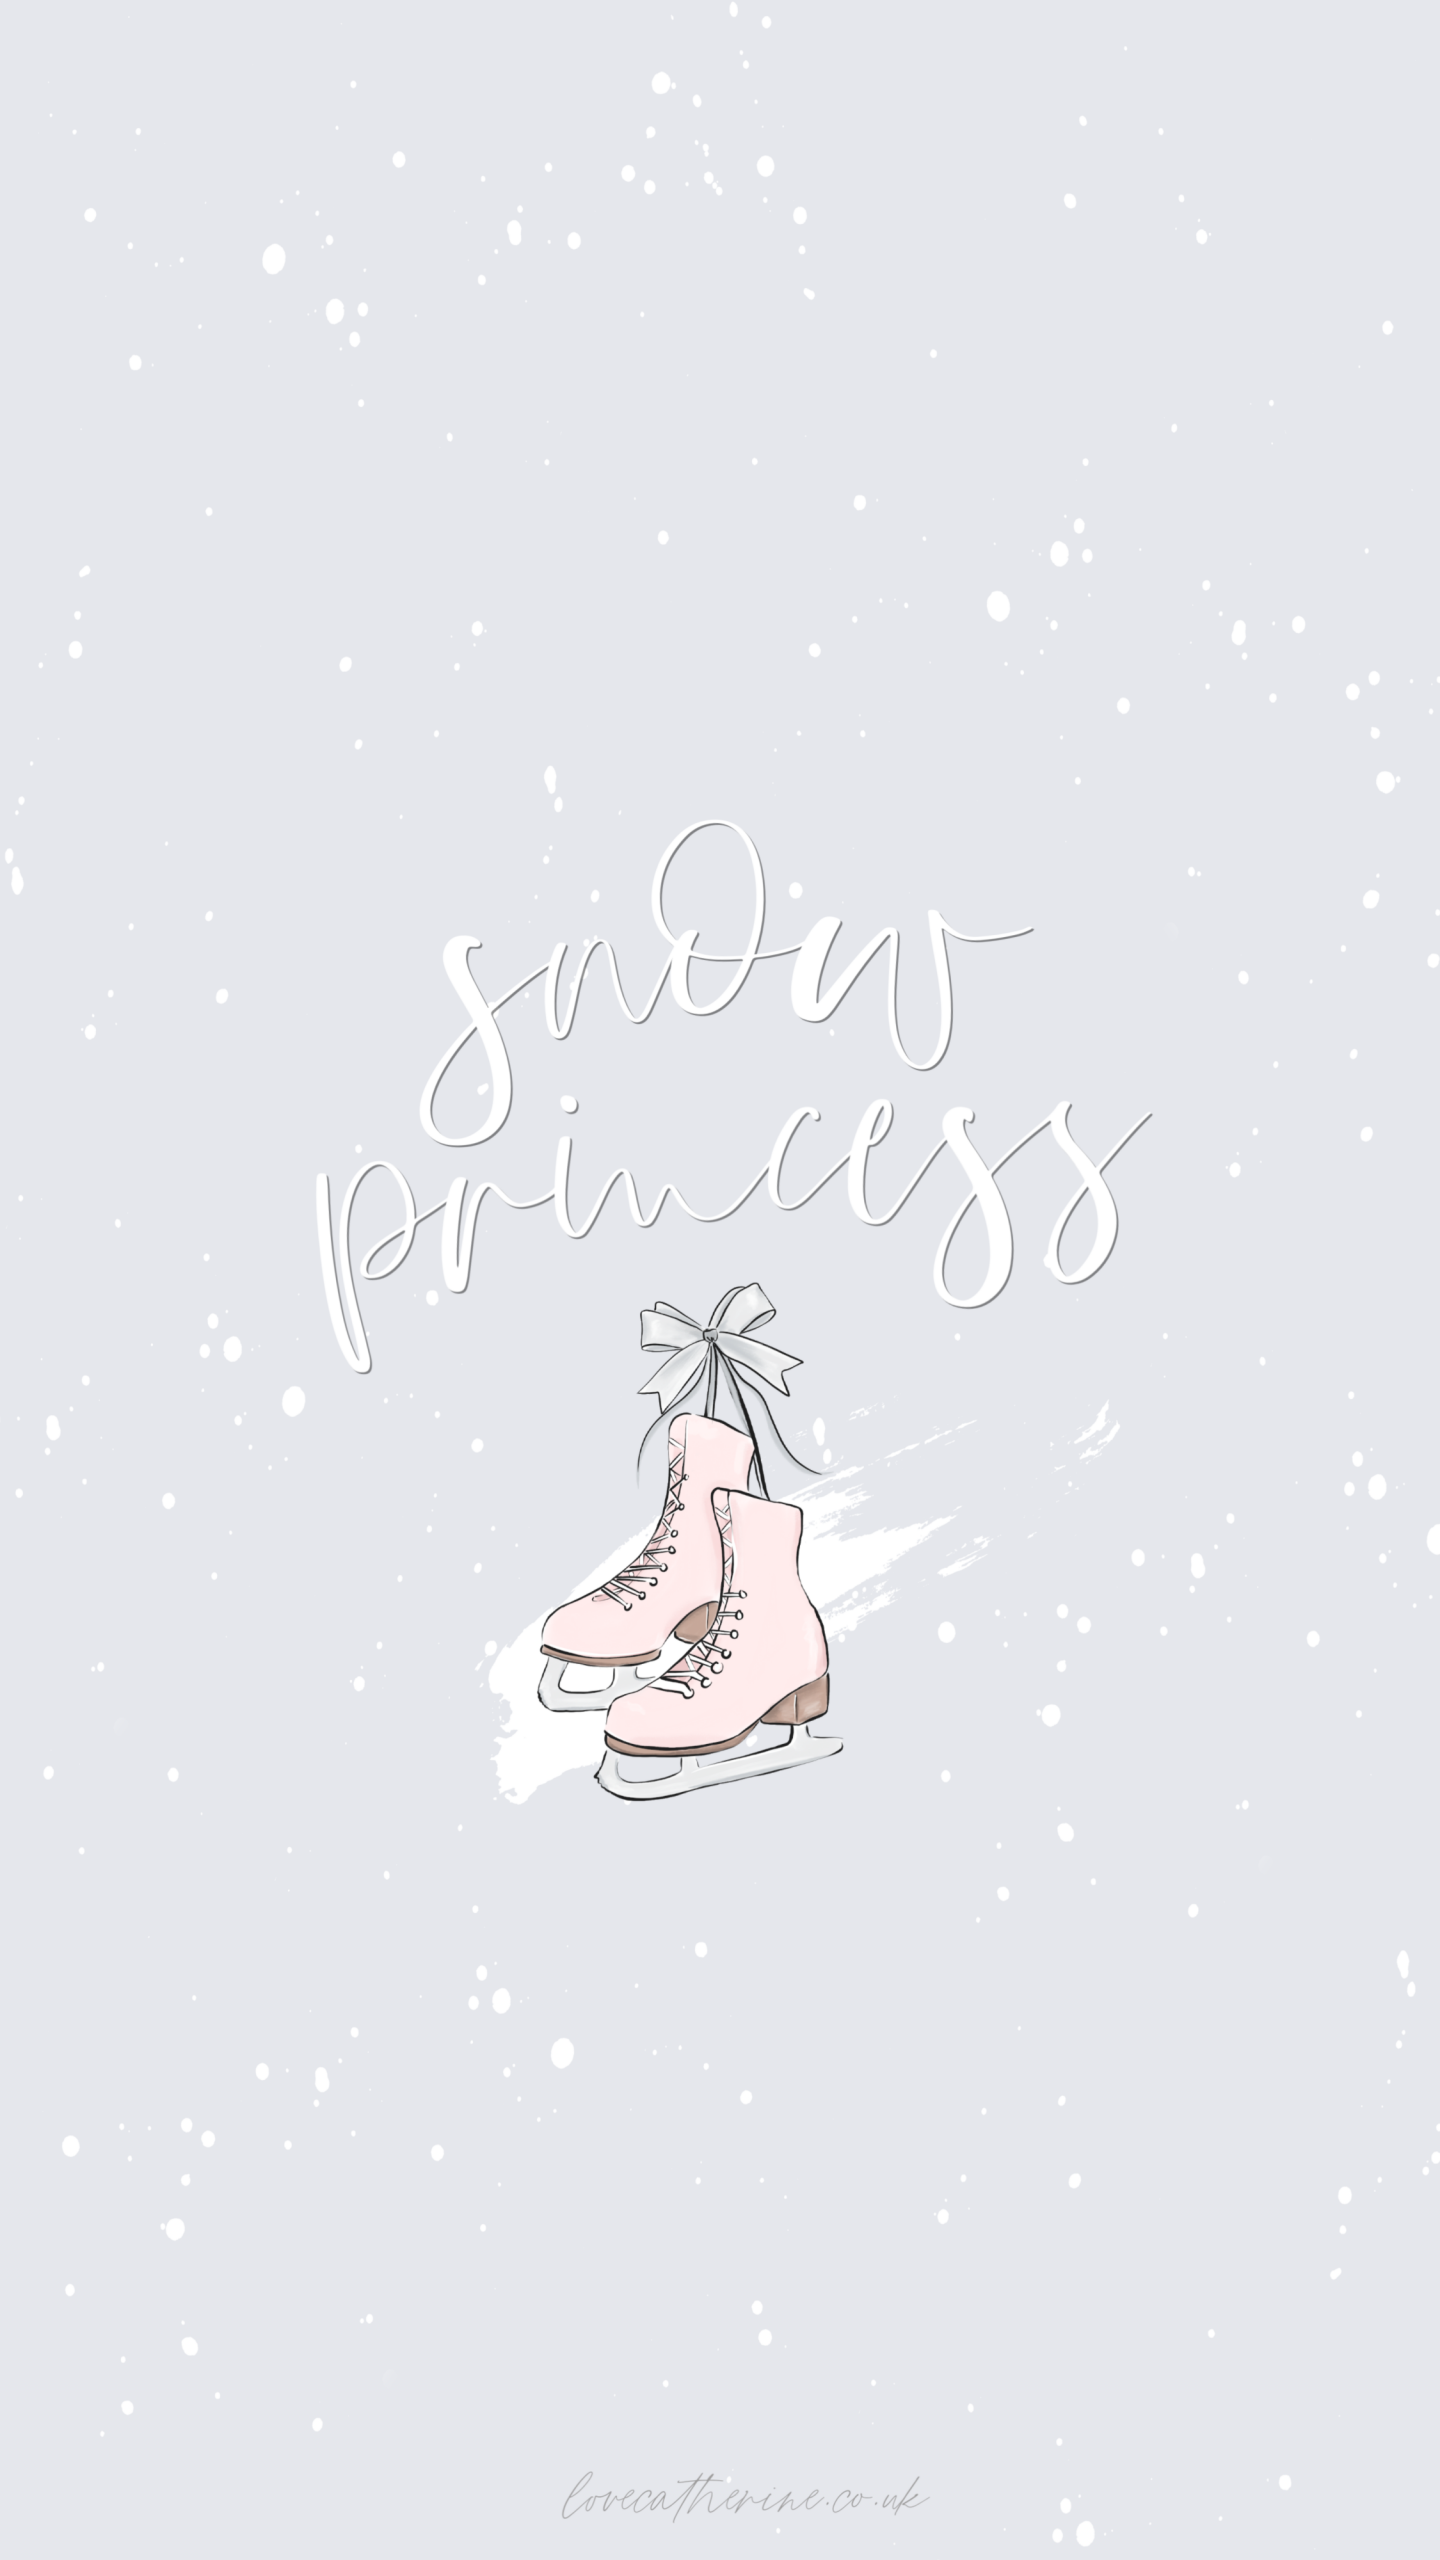 Free Cute Girly Winter Phone Wallpapers For Christmas Wallpaper Iphone Christmas Iphone Wallpaper Girly Christmas Phone Wallpaper